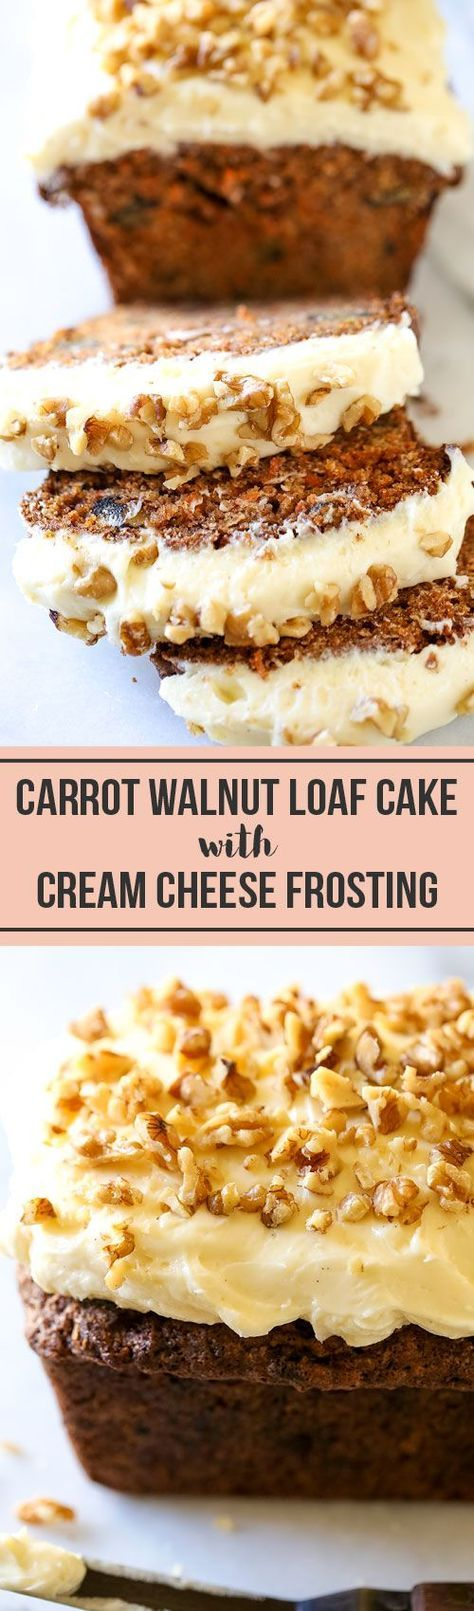 The PERFECT recipe for spring baking! Even carrot haters love this! It's moist, tender, and bursting with flavor. Perfect for gifting, too! Walnut loaf cake